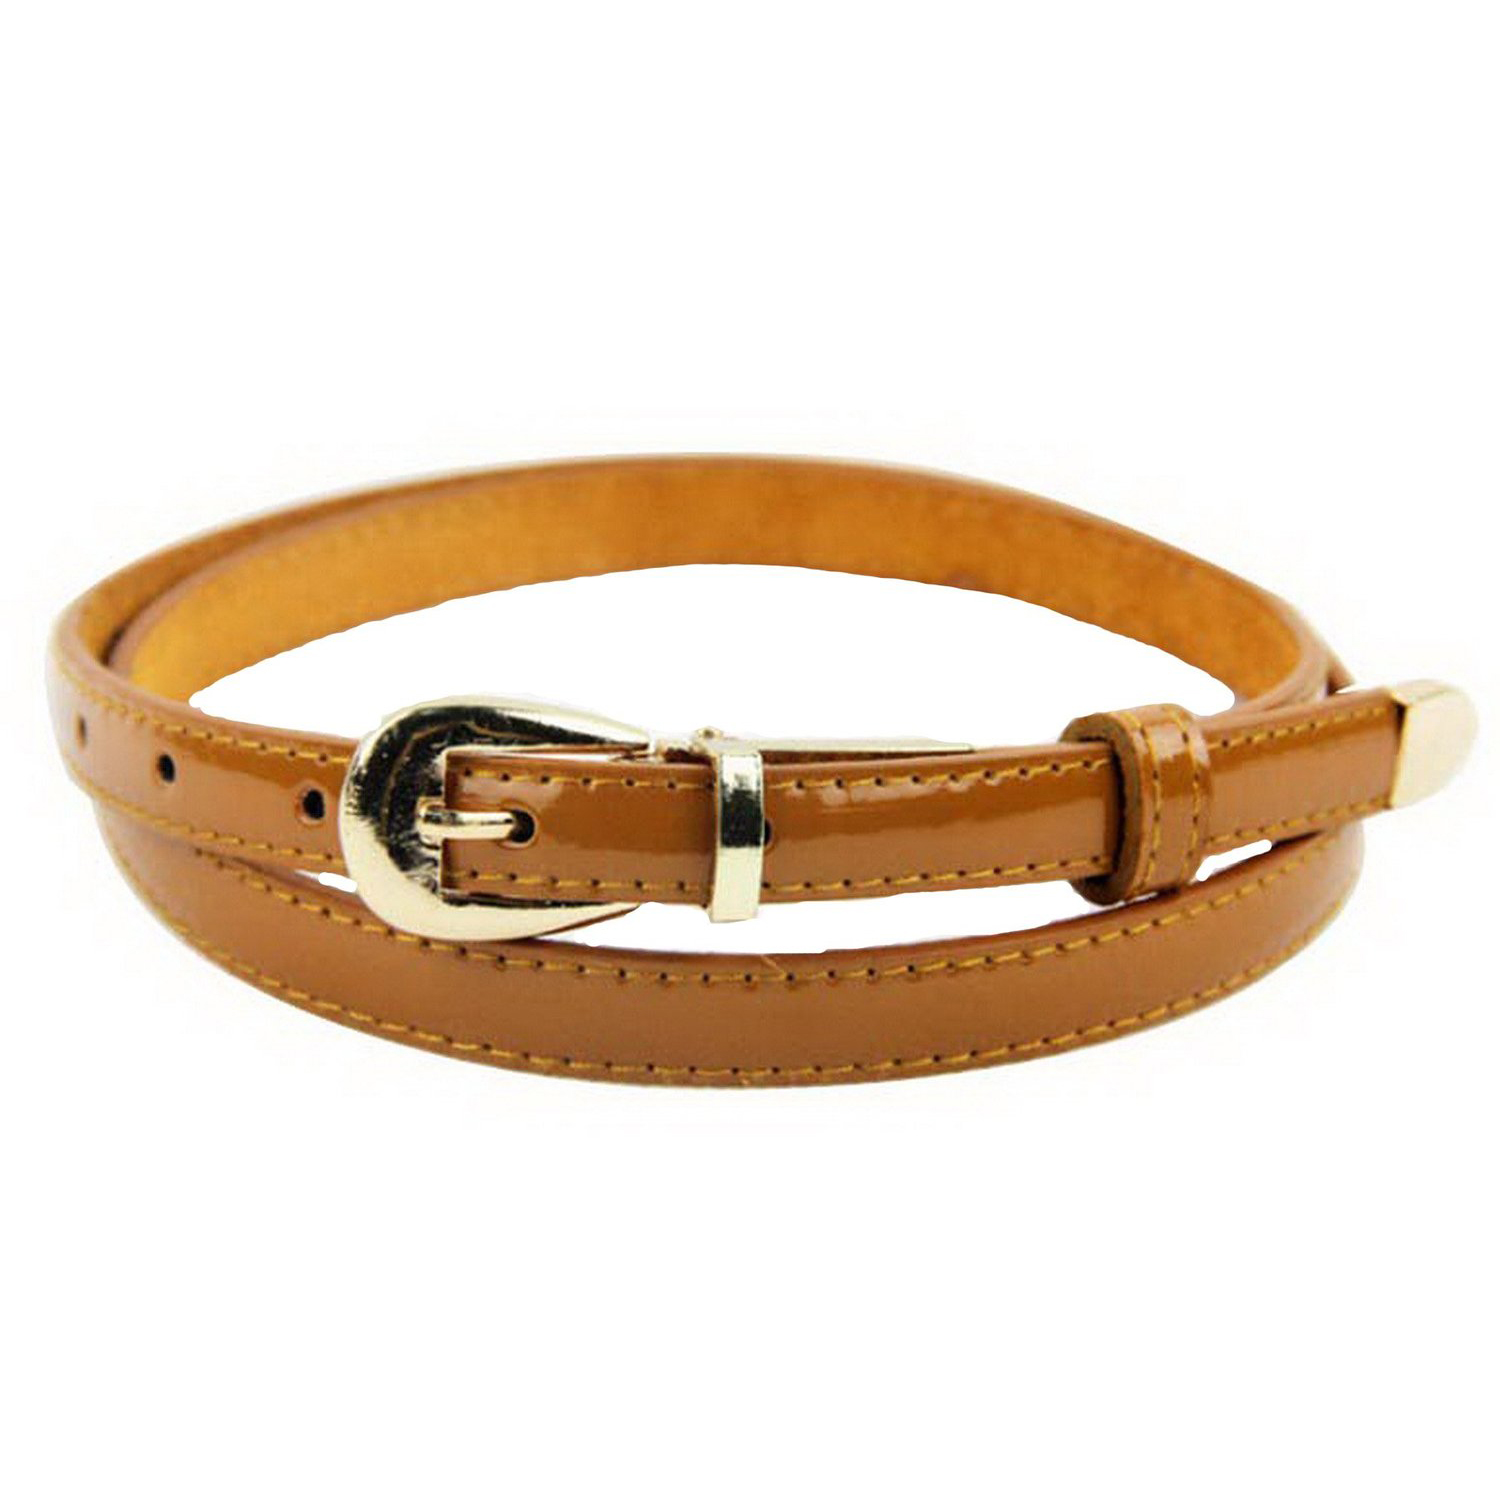 Modern Womens Candy Color Pu Leather Thin Belt Thin Skinny Waistband-light tan